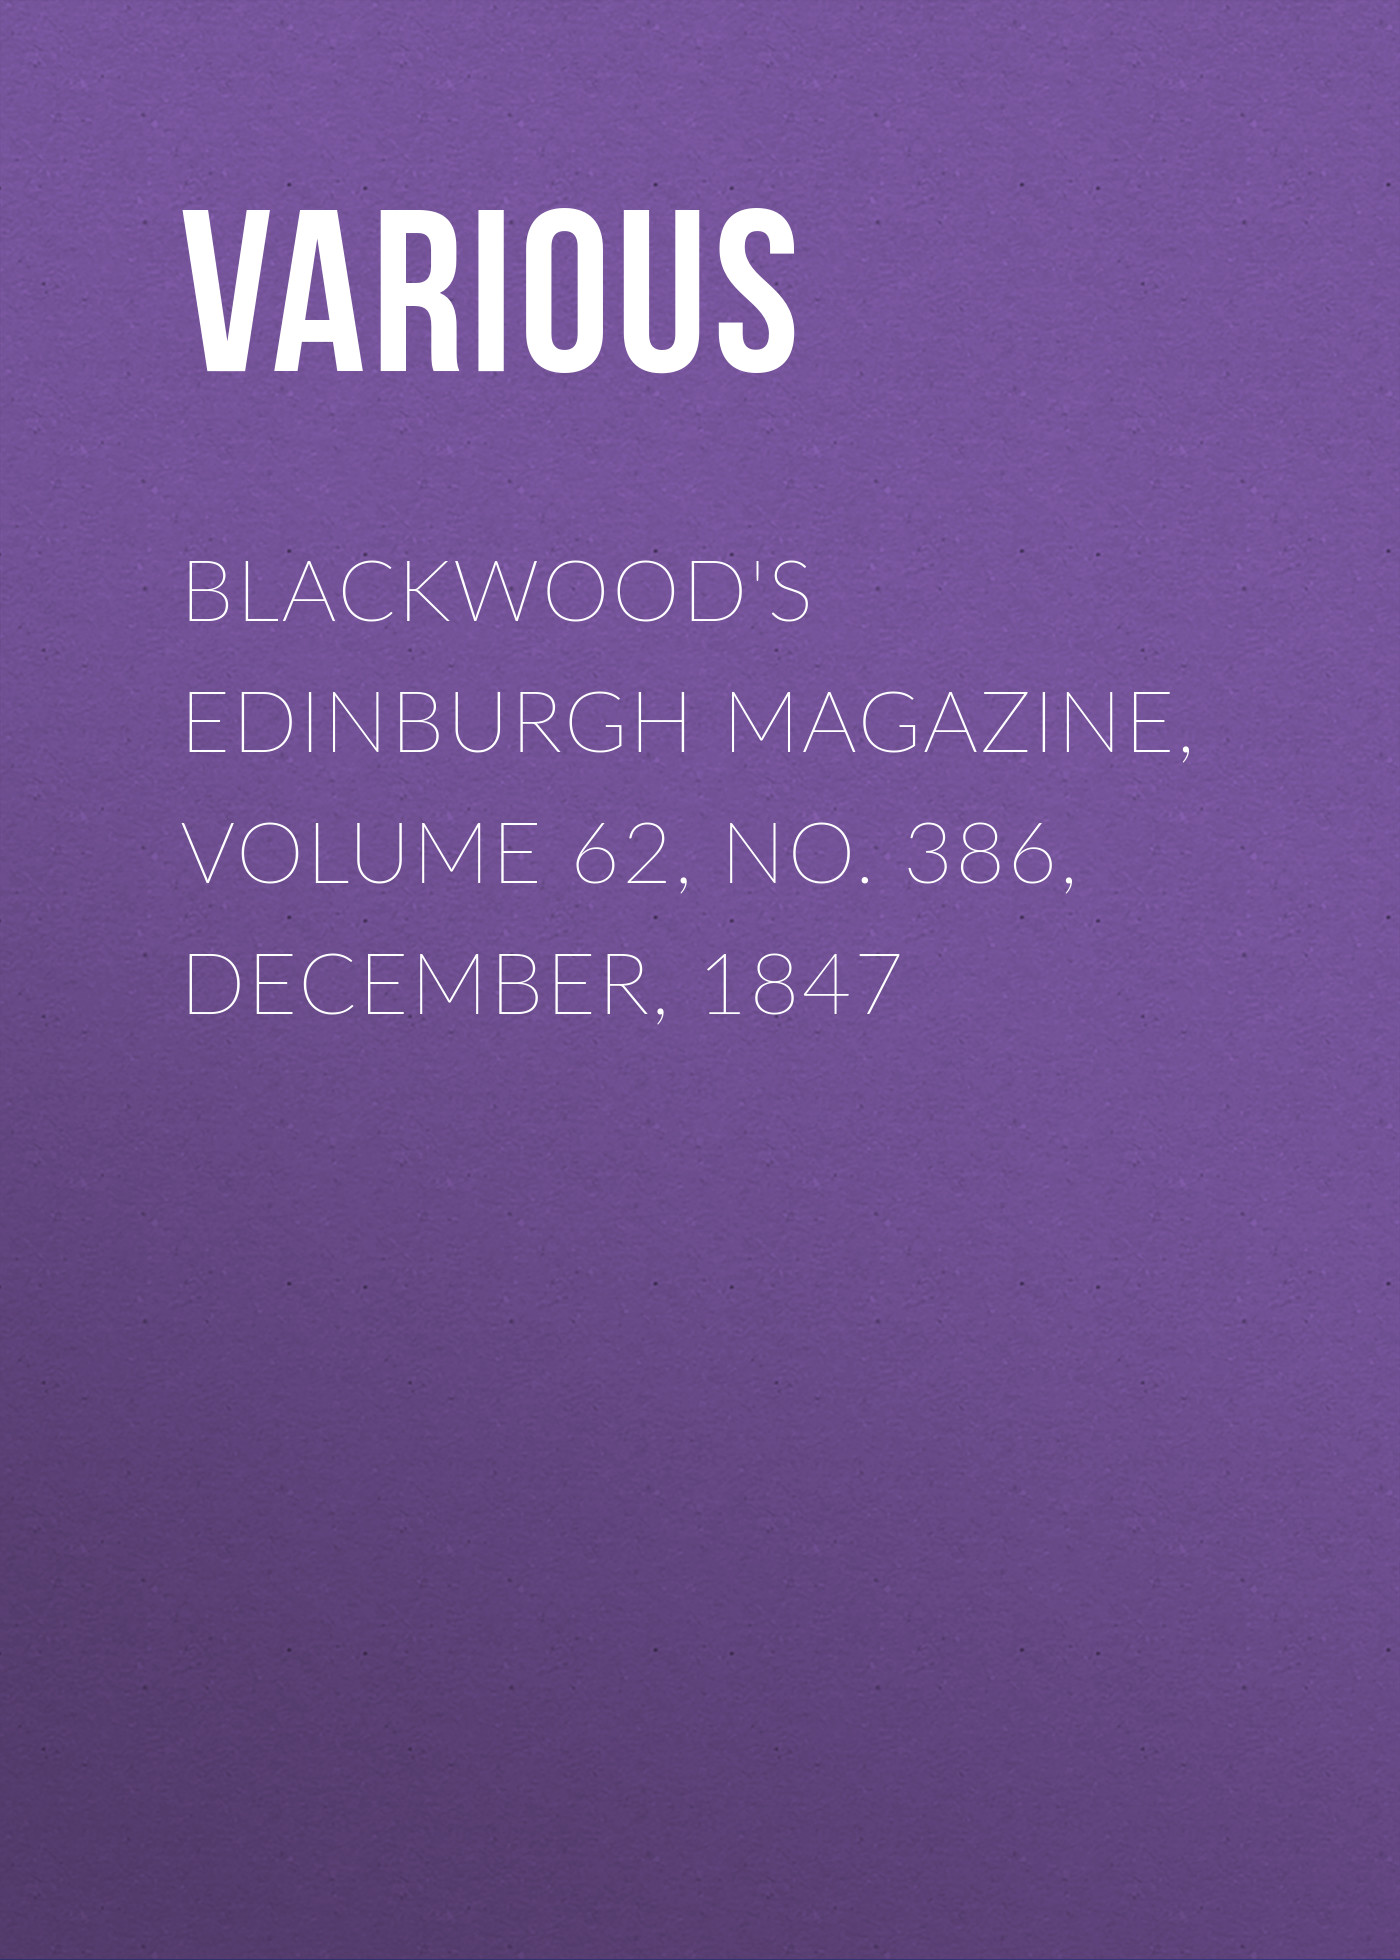 Various Blackwood's Edinburgh Magazine, Volume 62, No. 386, December, 1847 various blackwood s edinburgh magazine volume 67 no 411 january 1850